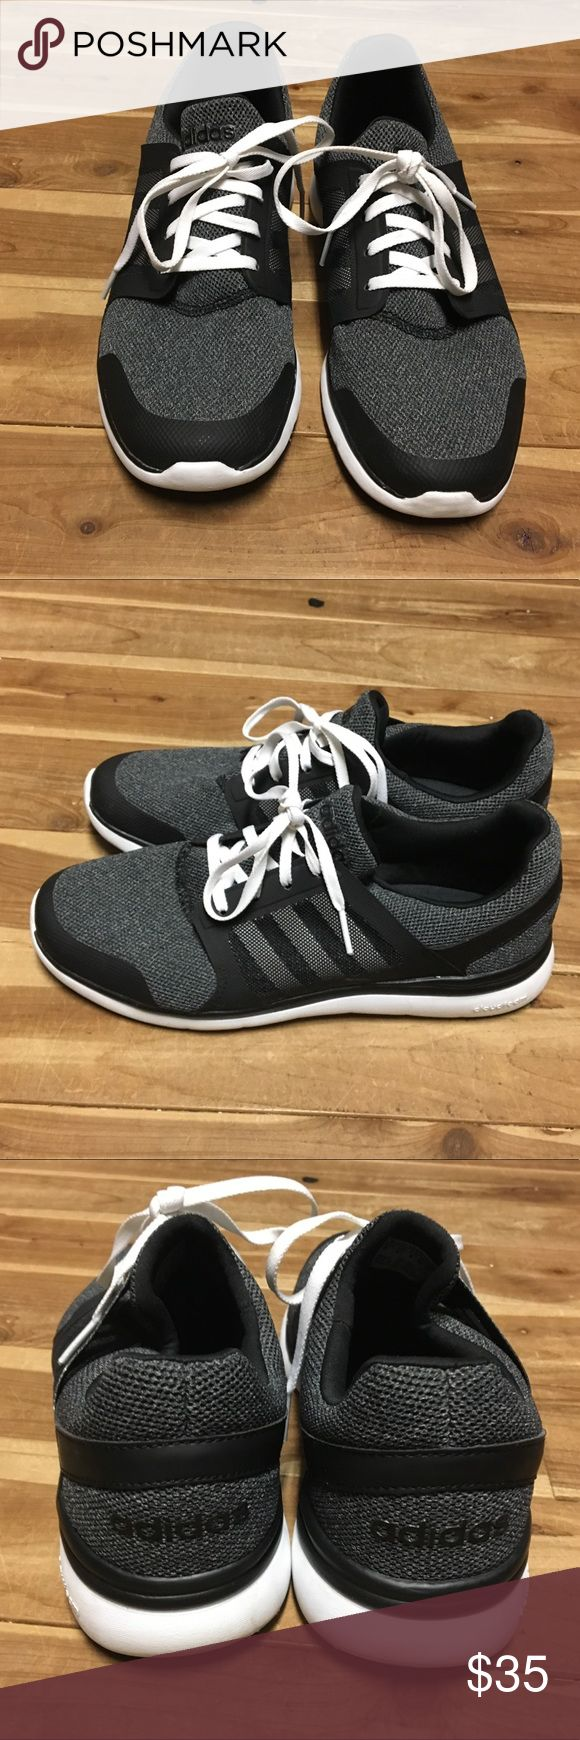 Like new Adidas Neo shoes! Worn once, in like new condition. adidas Shoes Sneakers